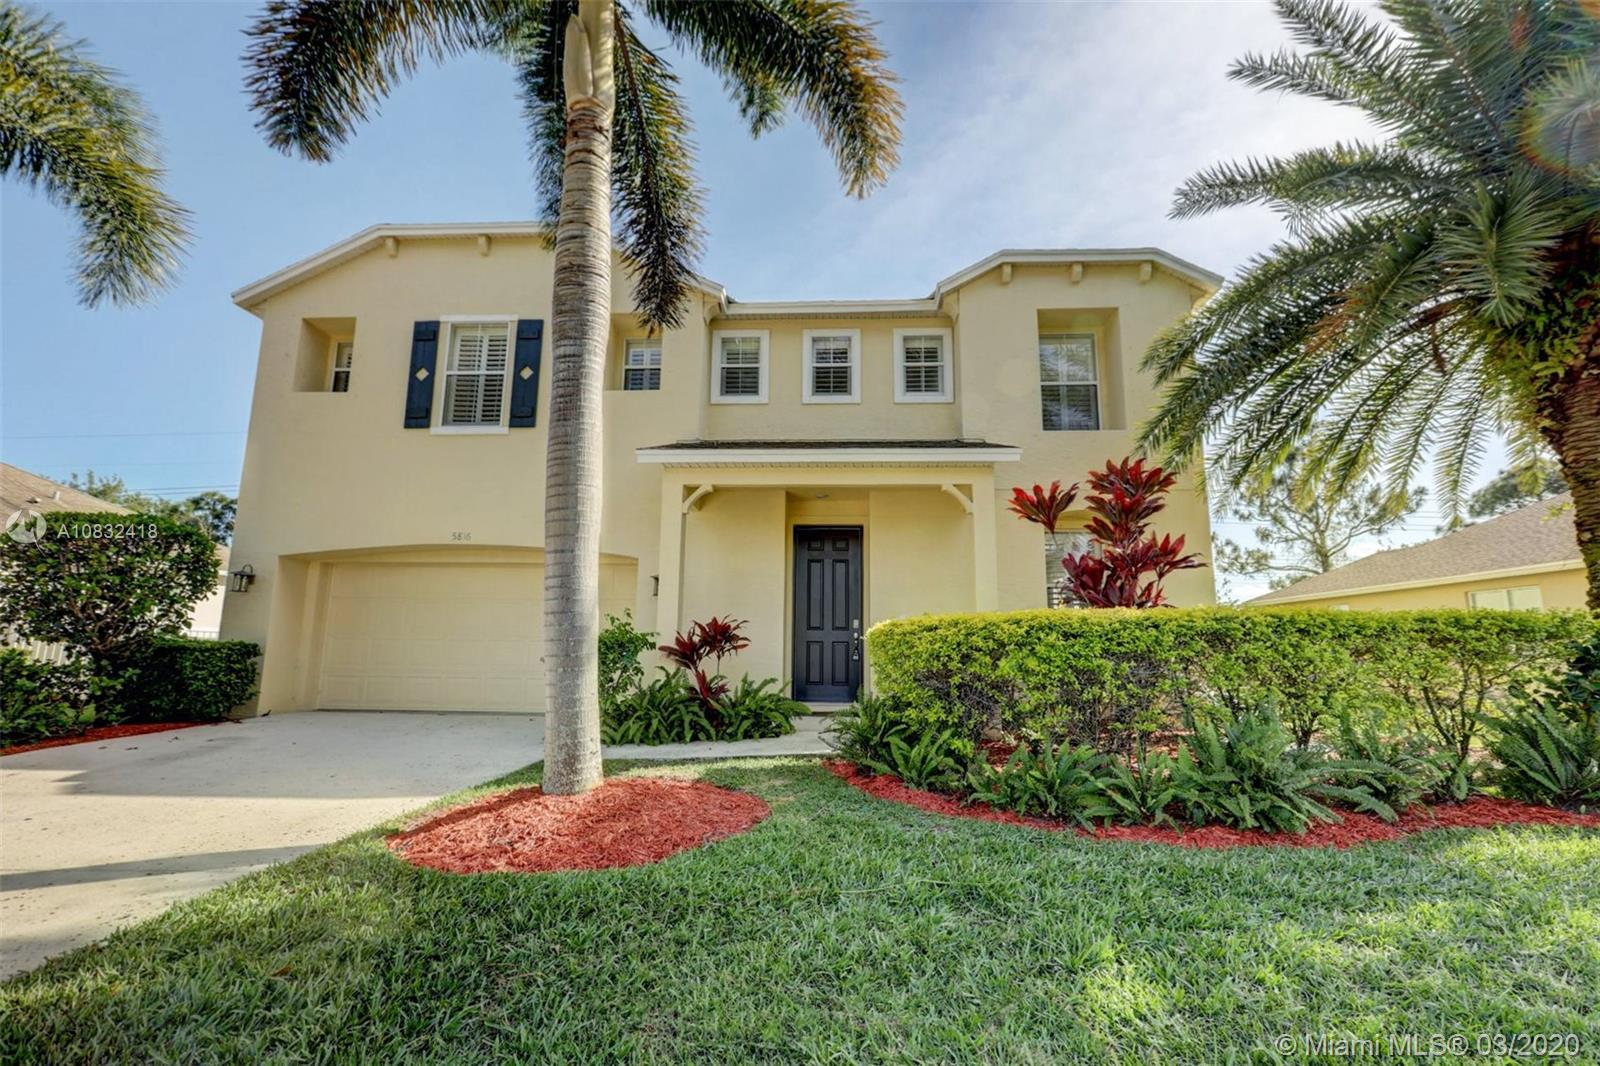 5816 NW Windy Pines Ln, Port St. Lucie, FL 34986